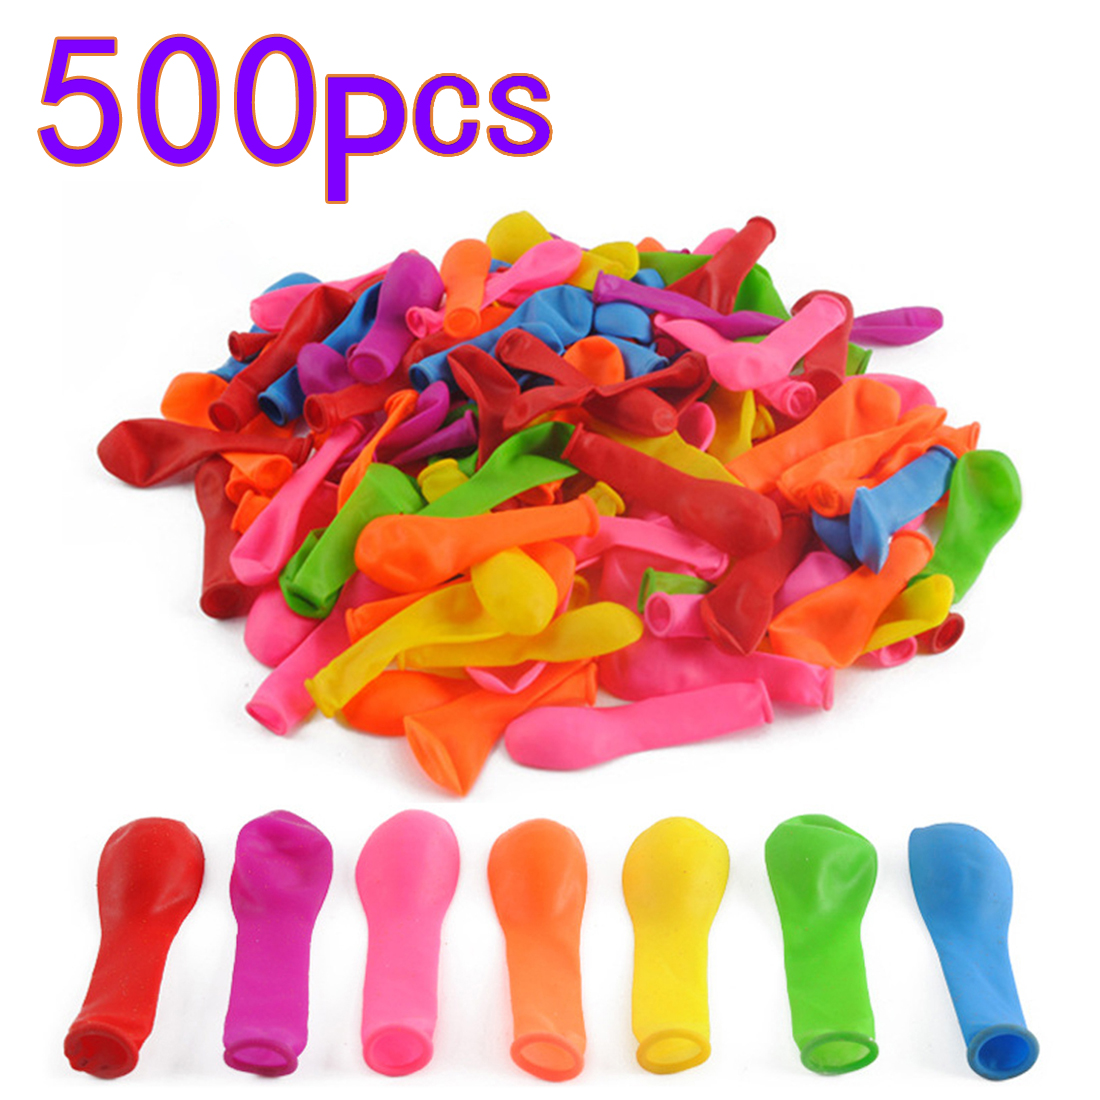 outdoor-toys-for-children-500pcs-no3-water-balloons-toys-fight-games-for-kids-summer-outdoor-beach-toy-party-color-random